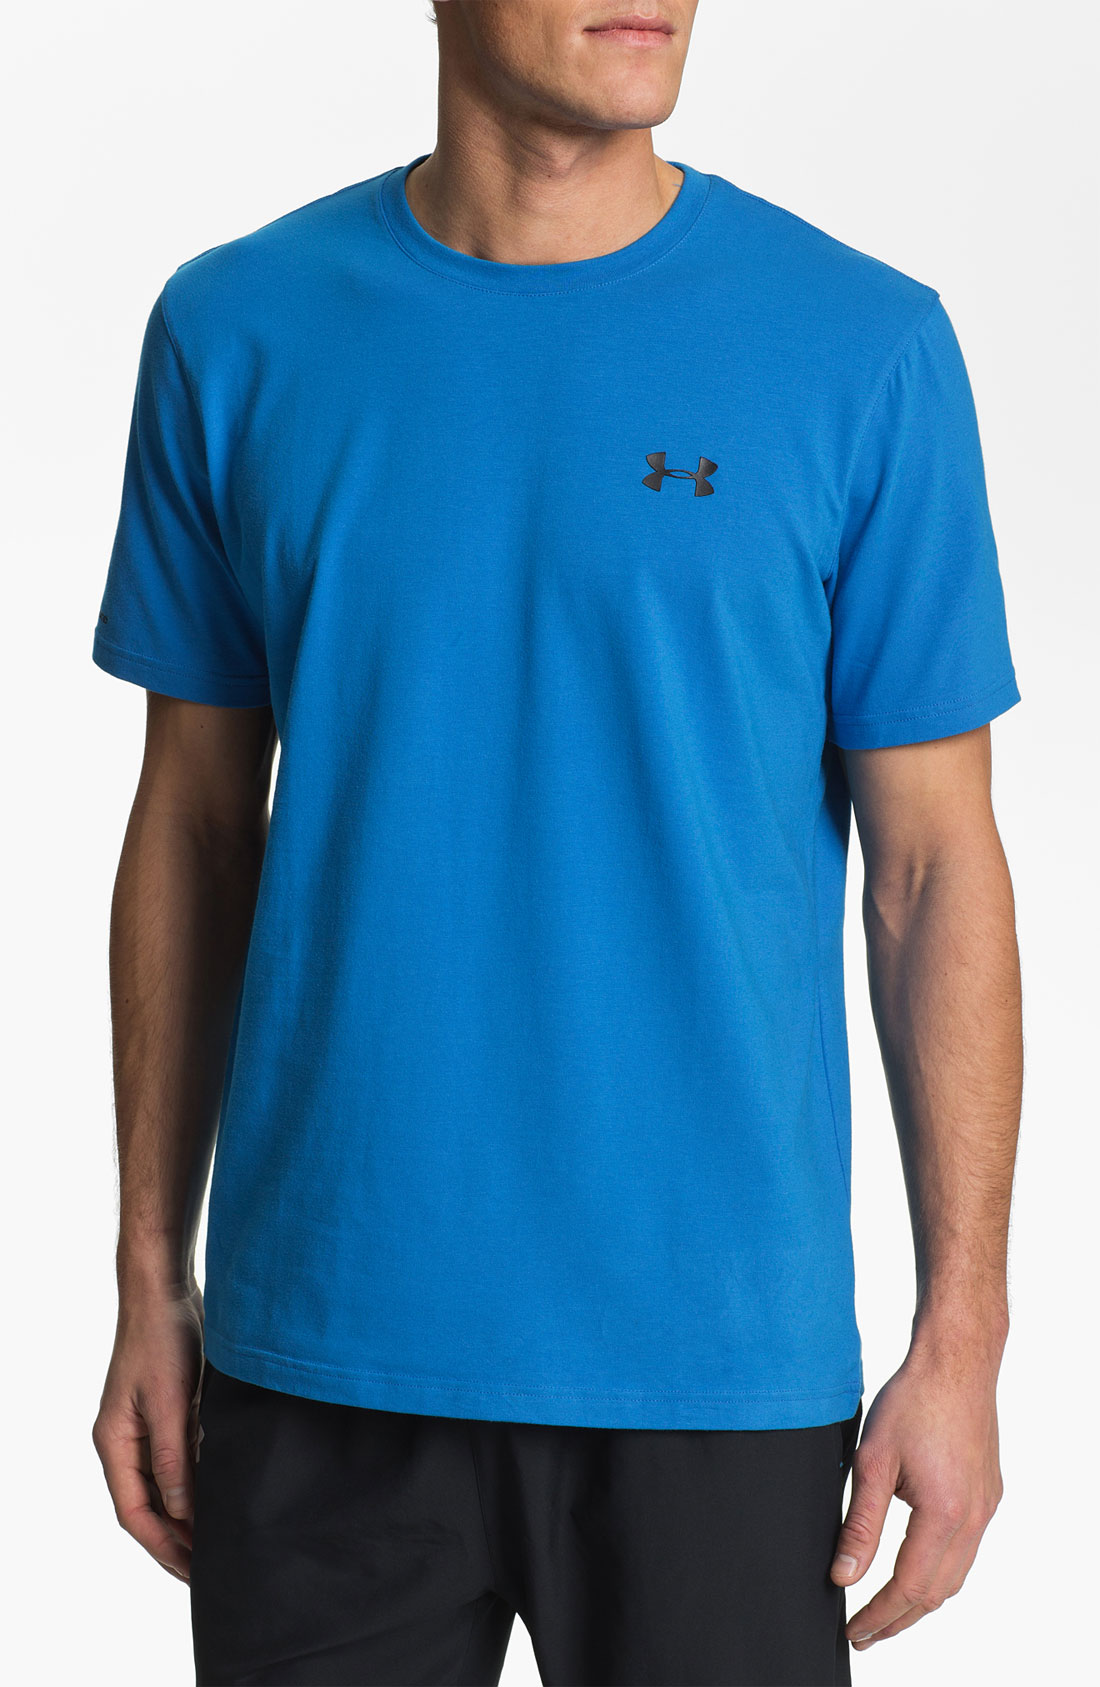 Under armour charged cotton t shirt in blue for men for Under armour charged cotton shirts mens